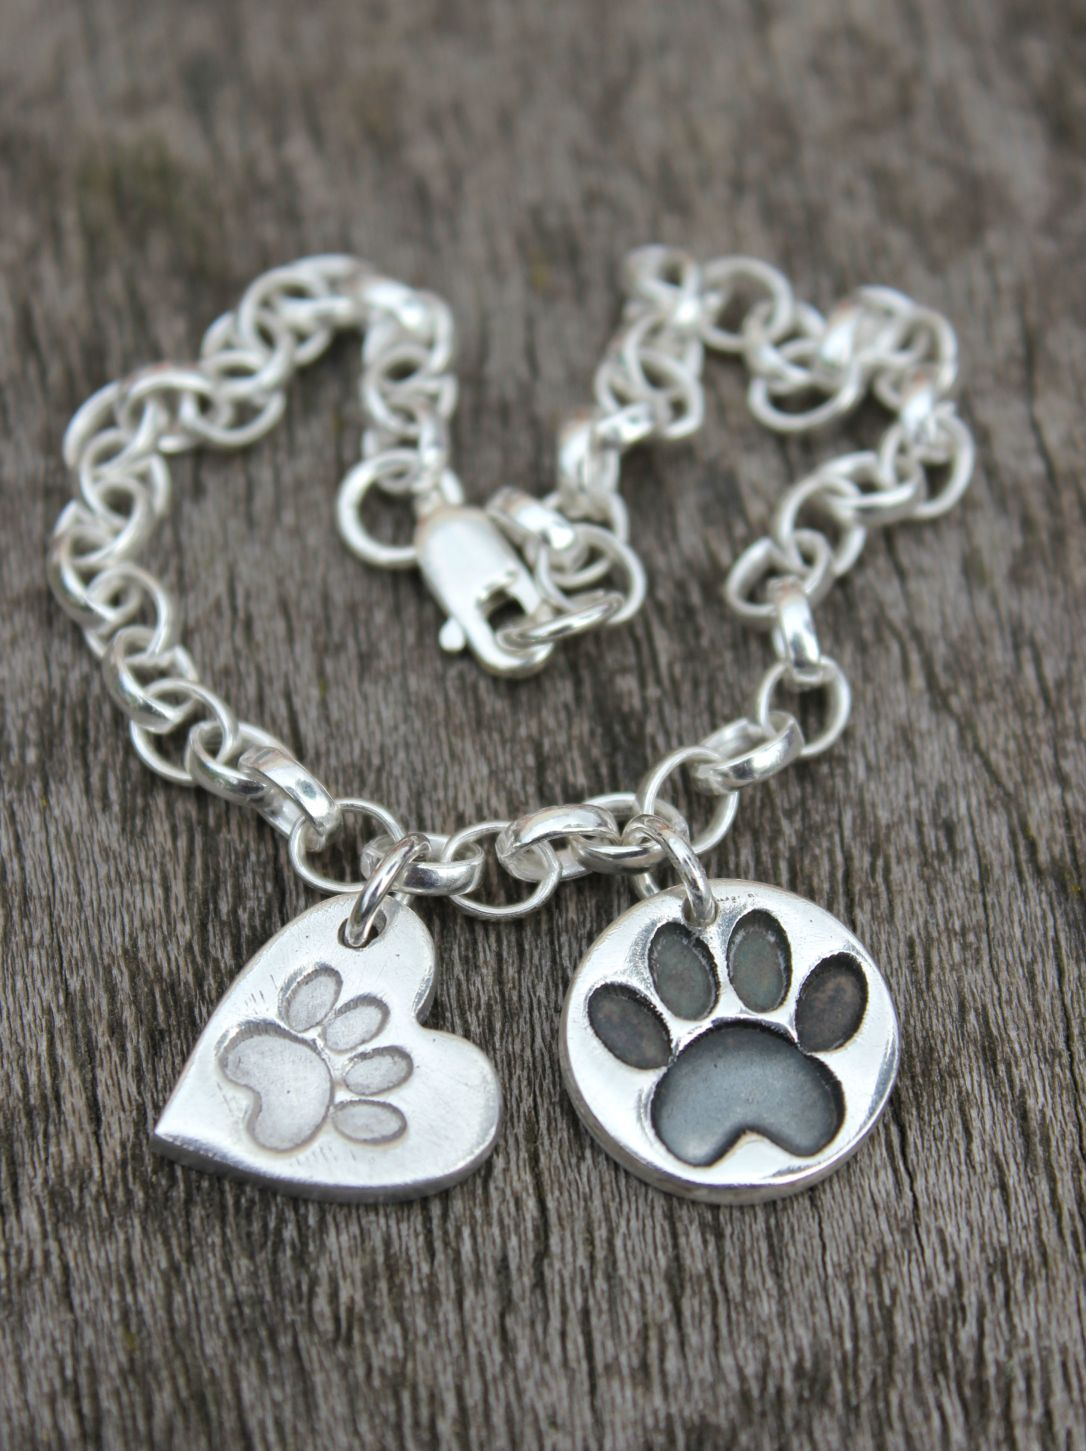 Solid silver pawprint charms by Little Silver Hedgehog